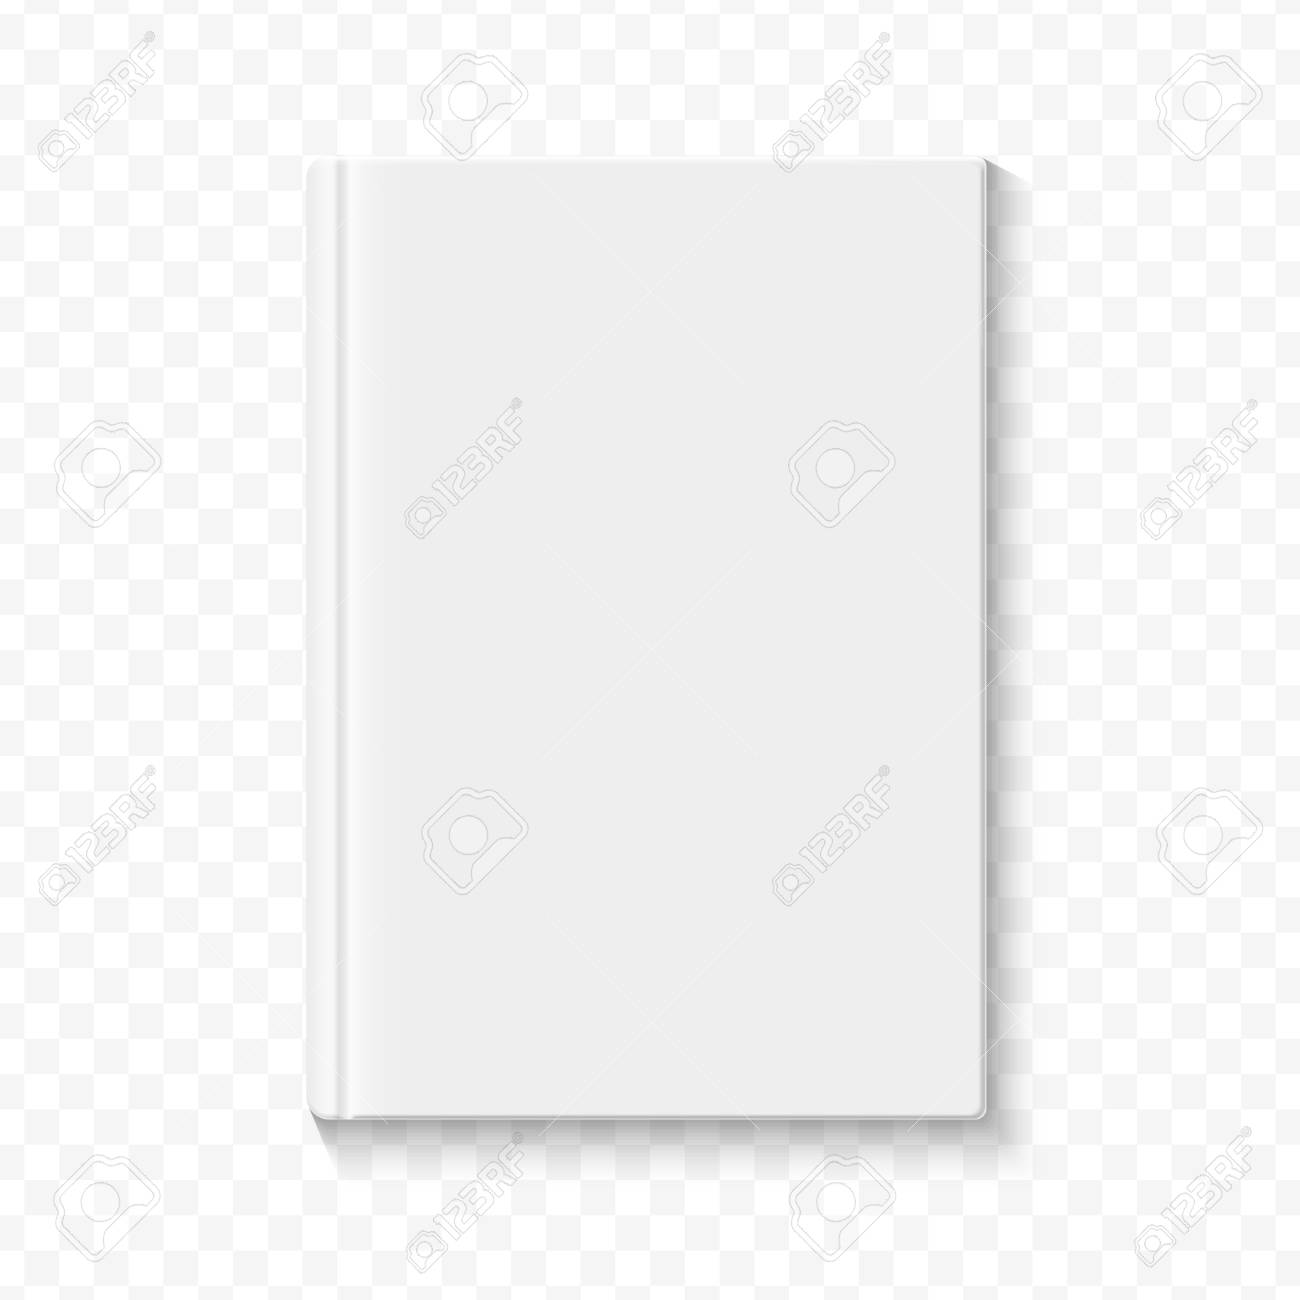 clear white blank book cover template on the alpha transperant